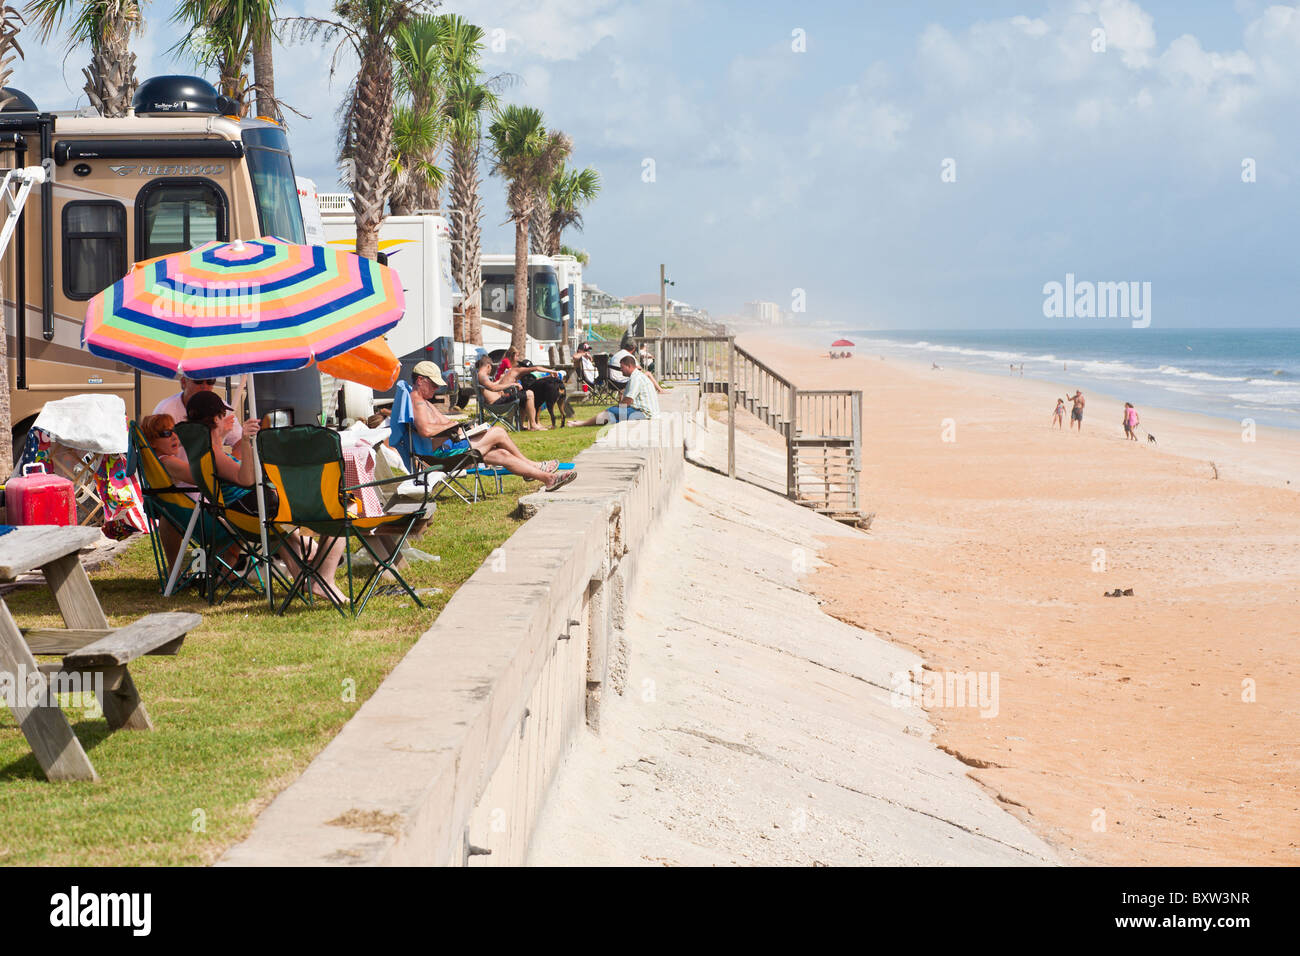 Campers enjoy the beach at a waterfront RV resort at Beverly Beach, Florida - Stock Image